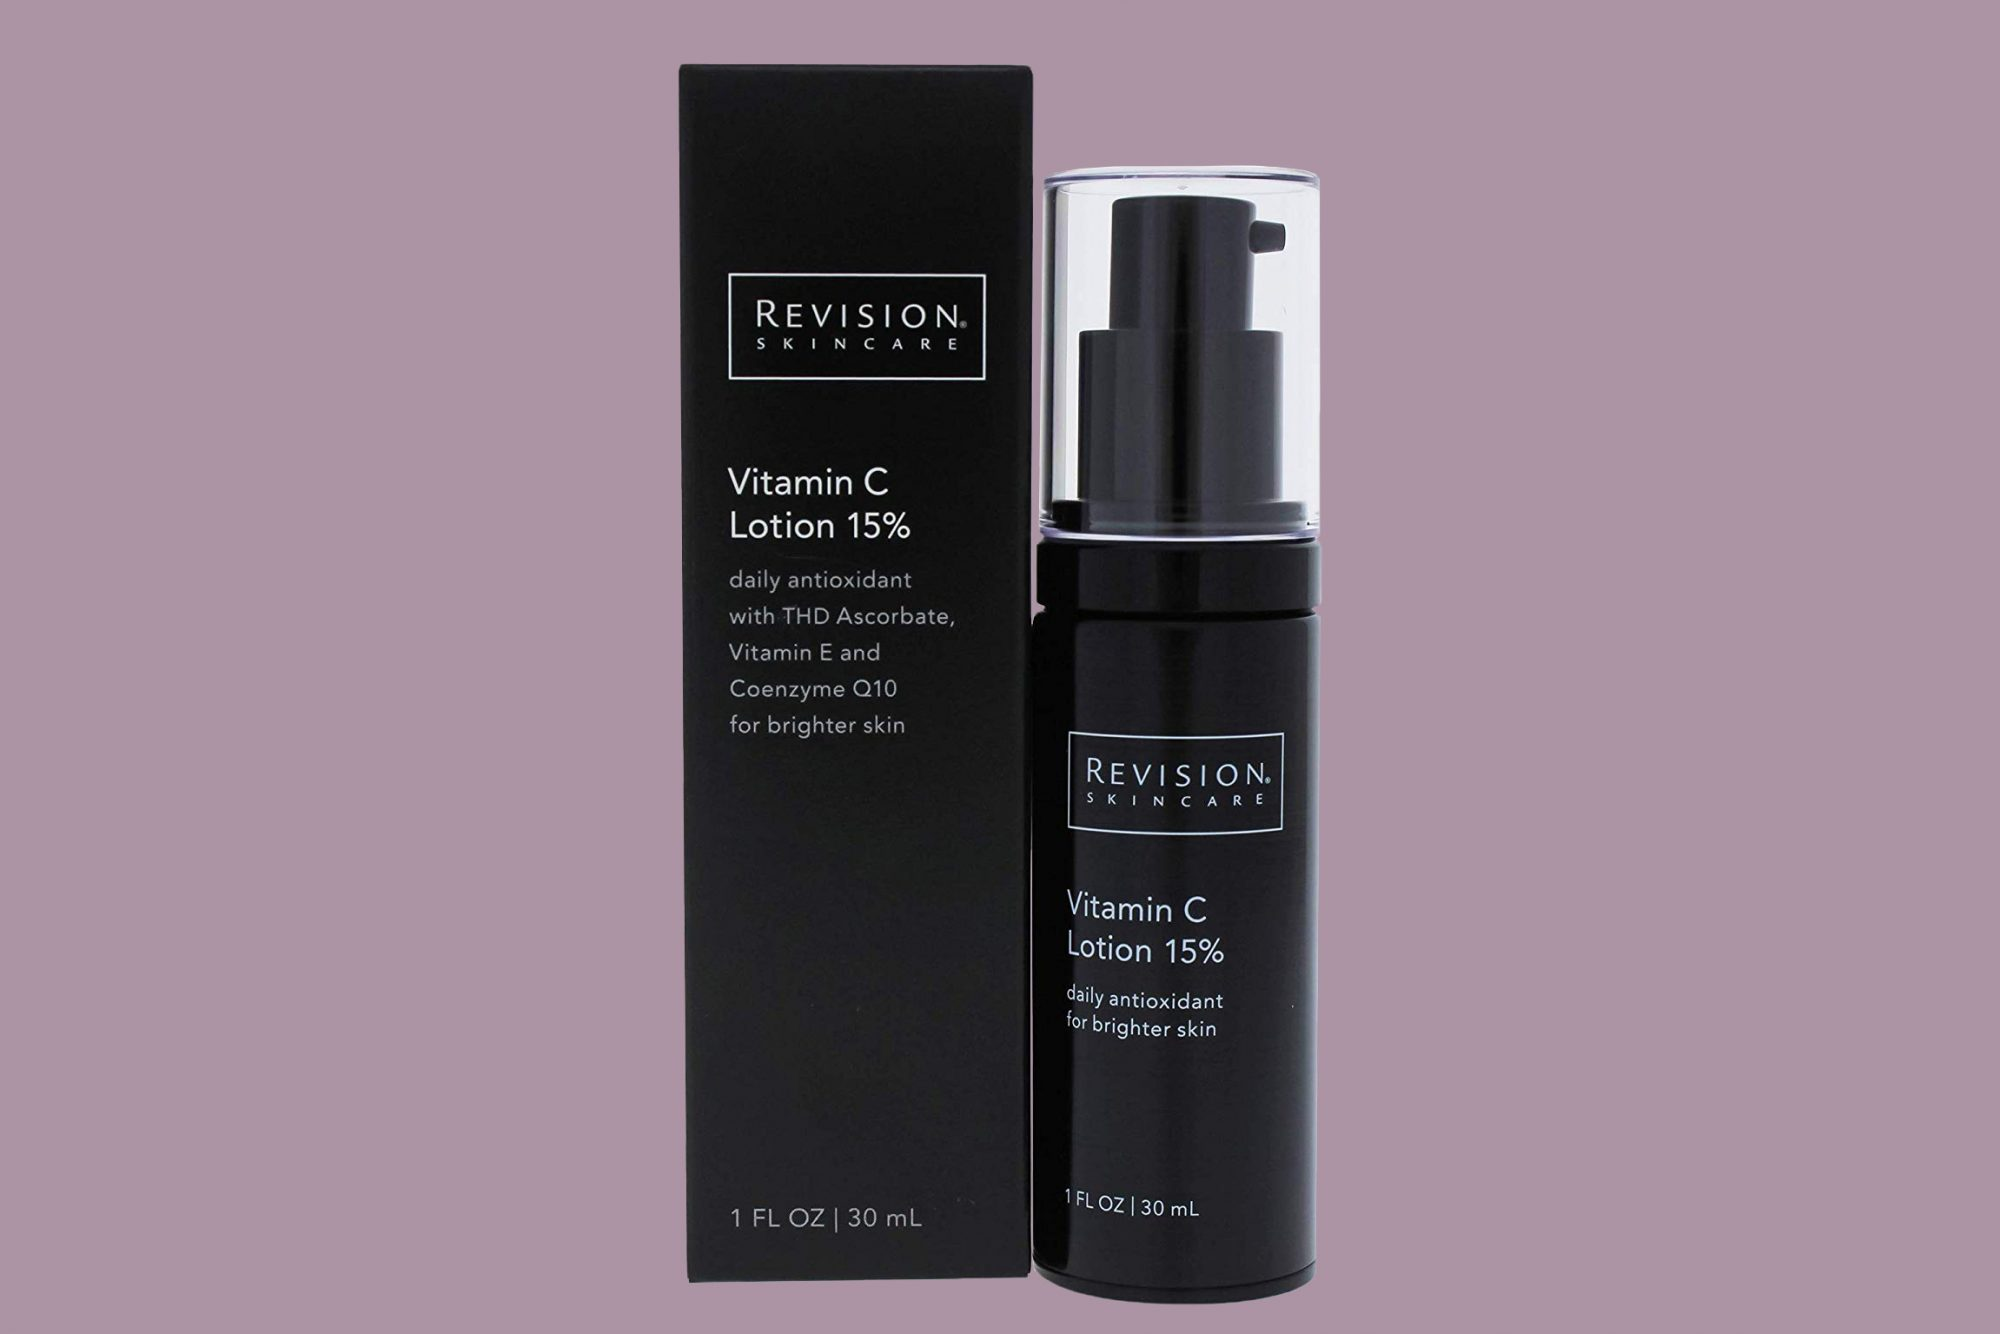 The Dupe: Revision Skincare Vitamin C Lotion 15%